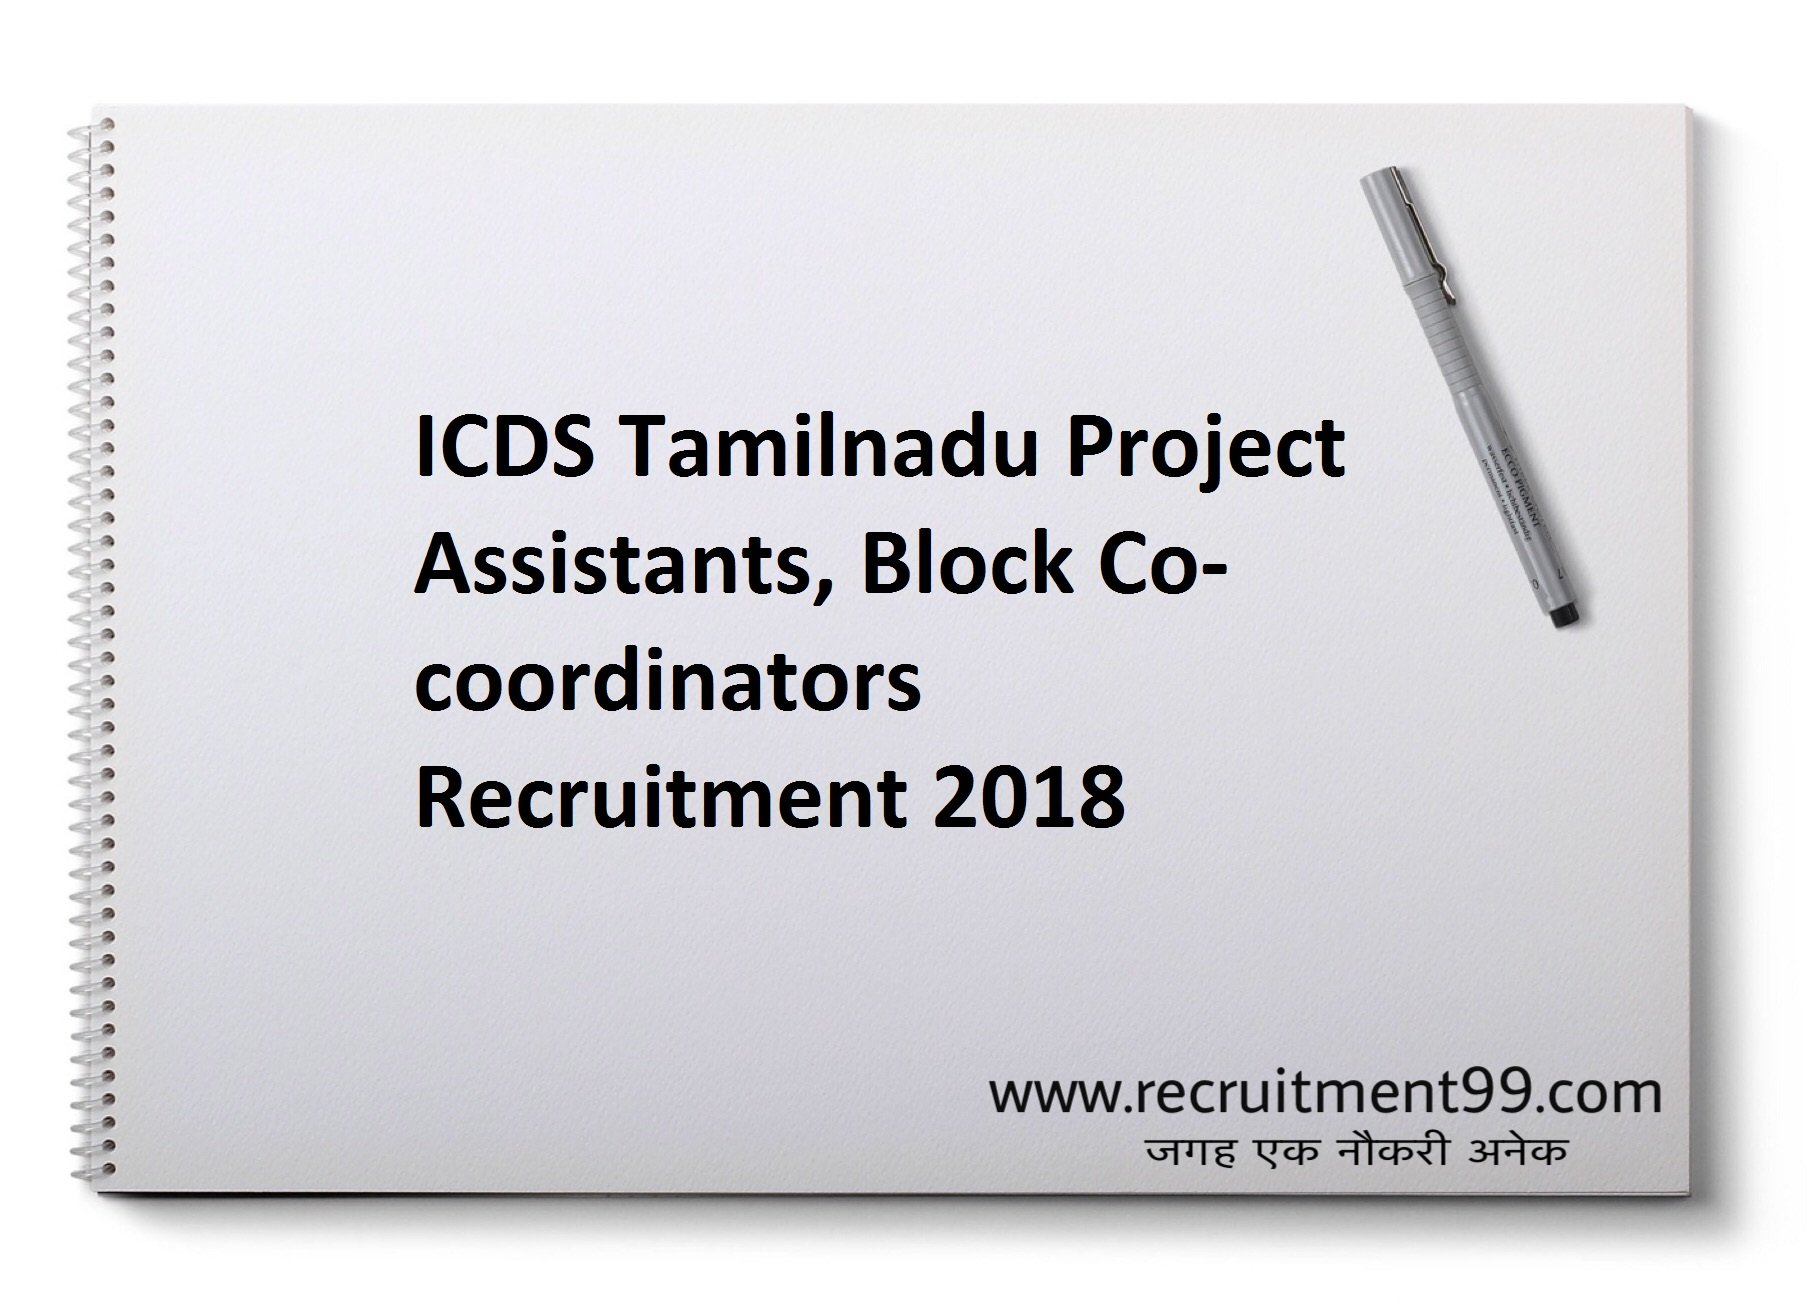 ICDS Tamilnadu Project Assistants, Block Co-coordinators Recruitment Admit Card Result 2018